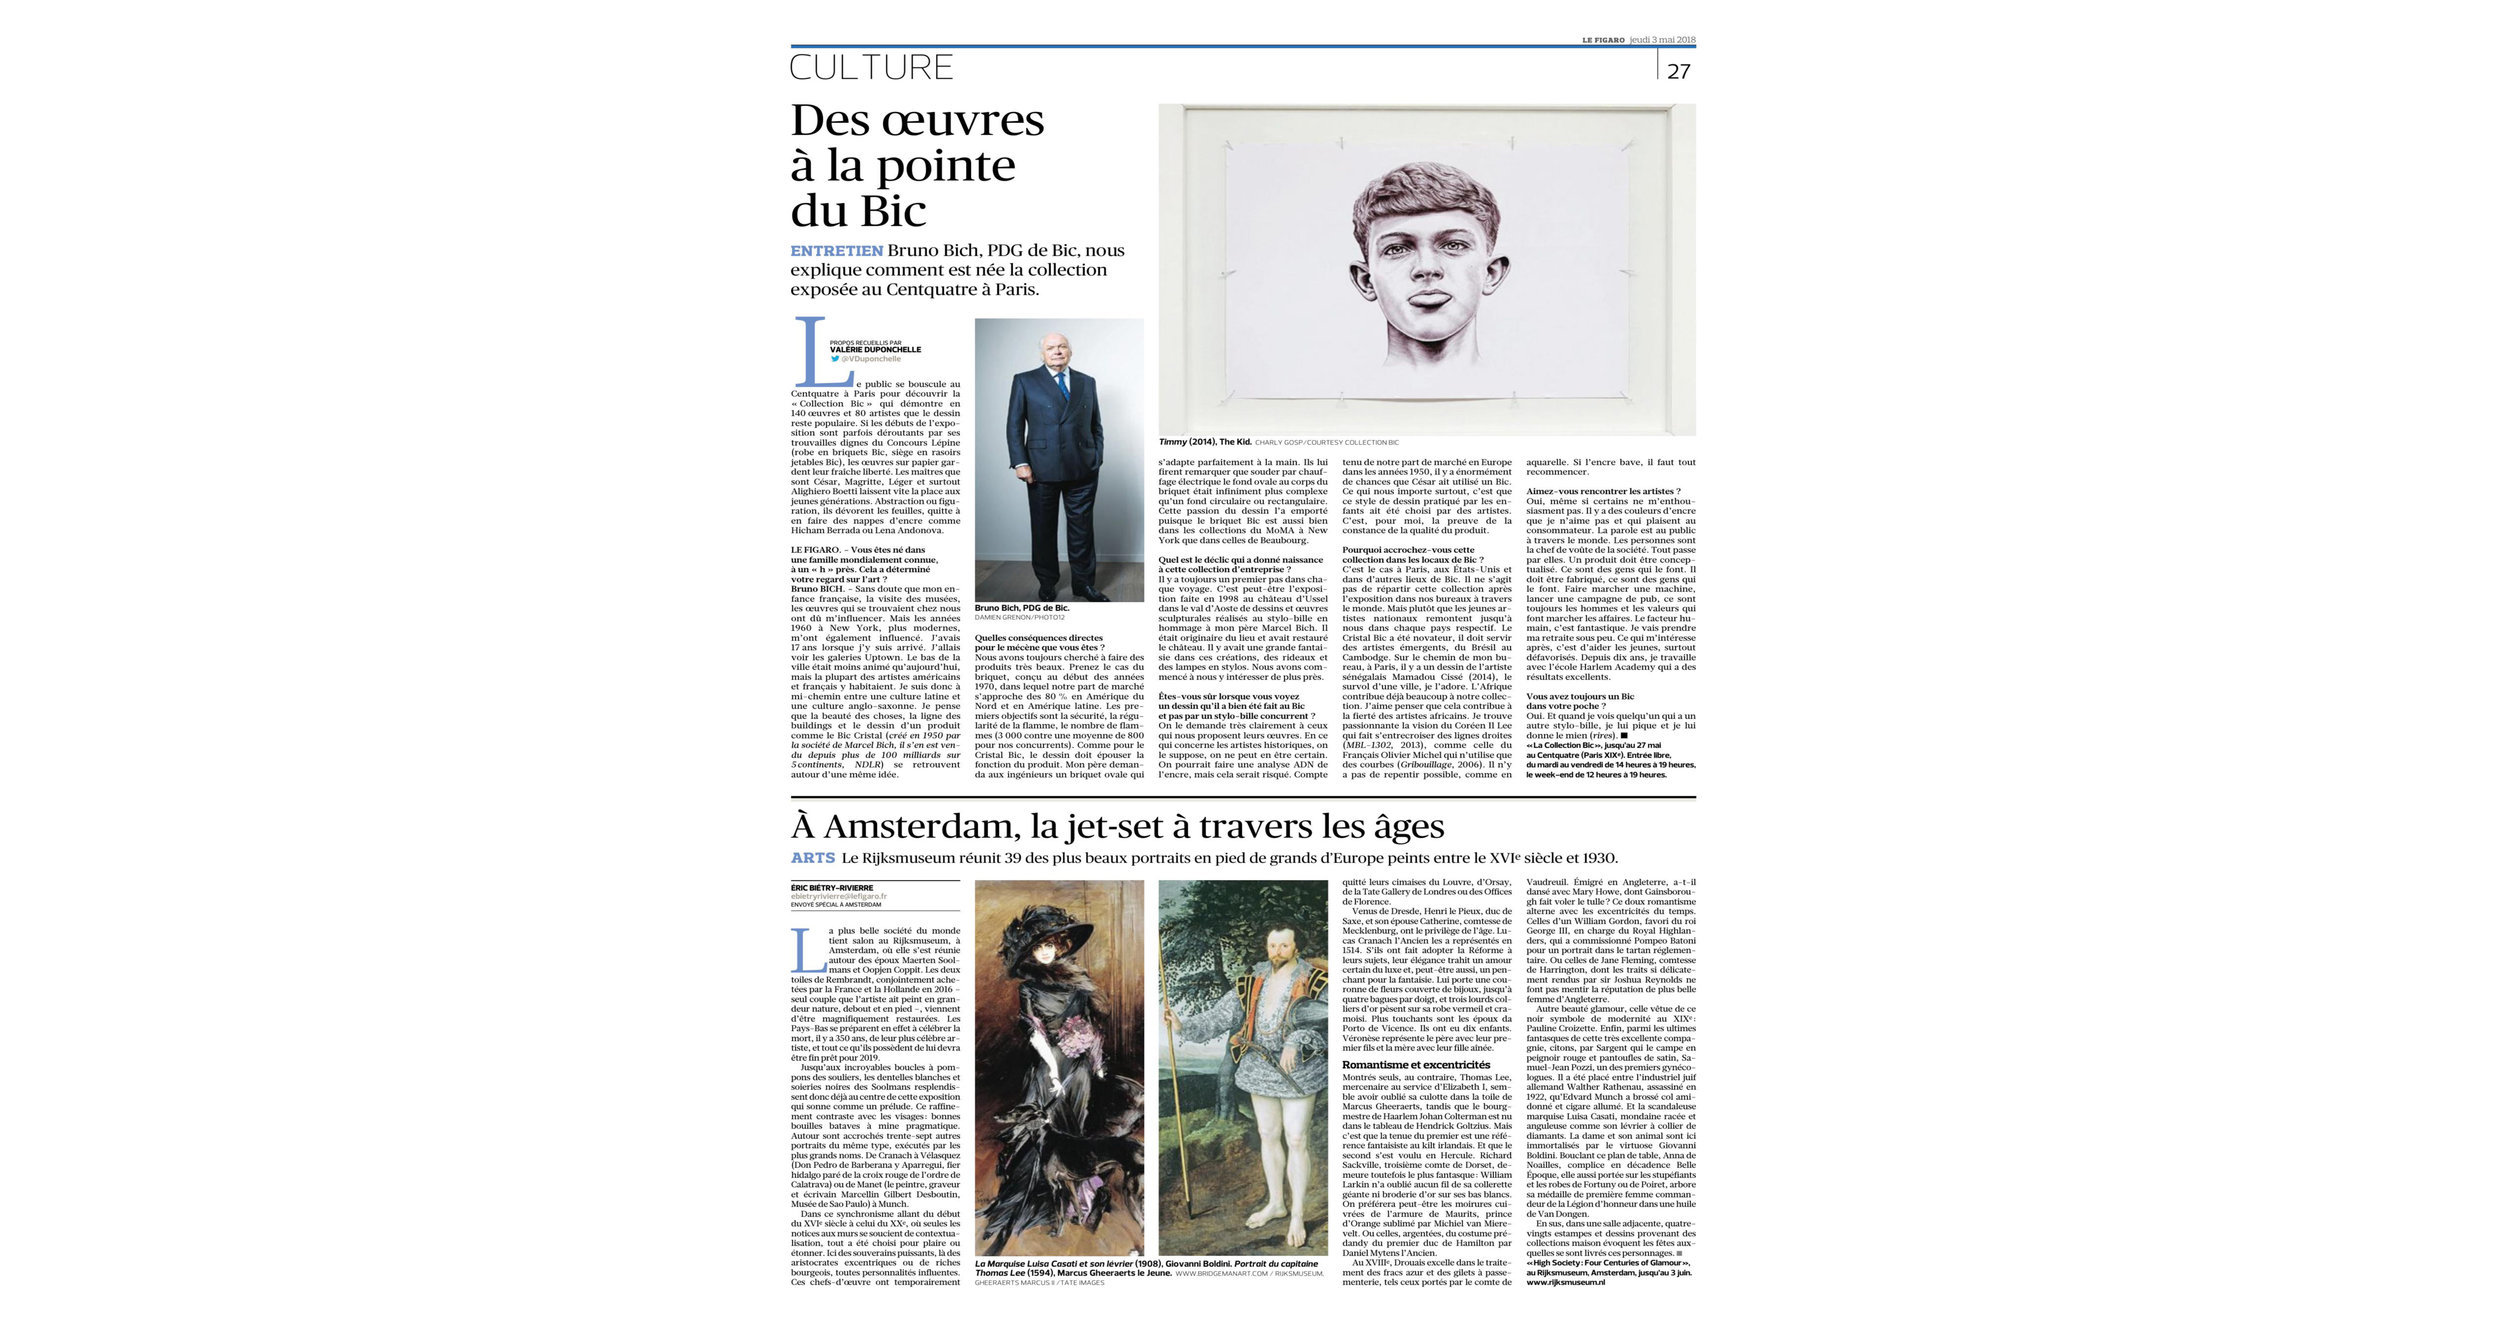 THE KID in LE FIGARO Newspaper - Leading National Daily Newspaper - Print Issue - France - June 03 2018 - Page 27 - Page 27.jpg